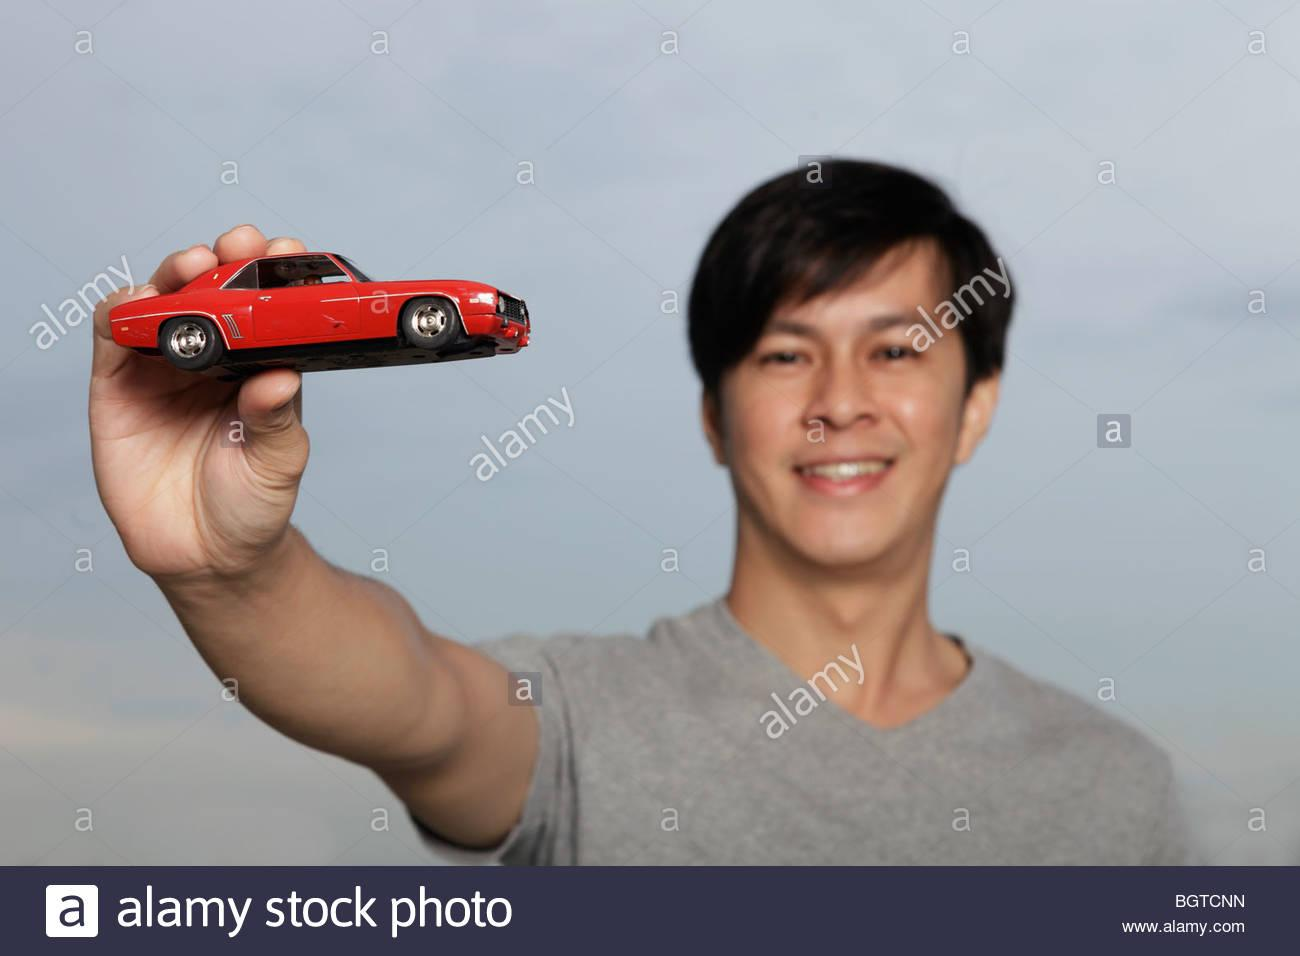 young-man-holding-up-red-toy-car-BGTCNN.jpg